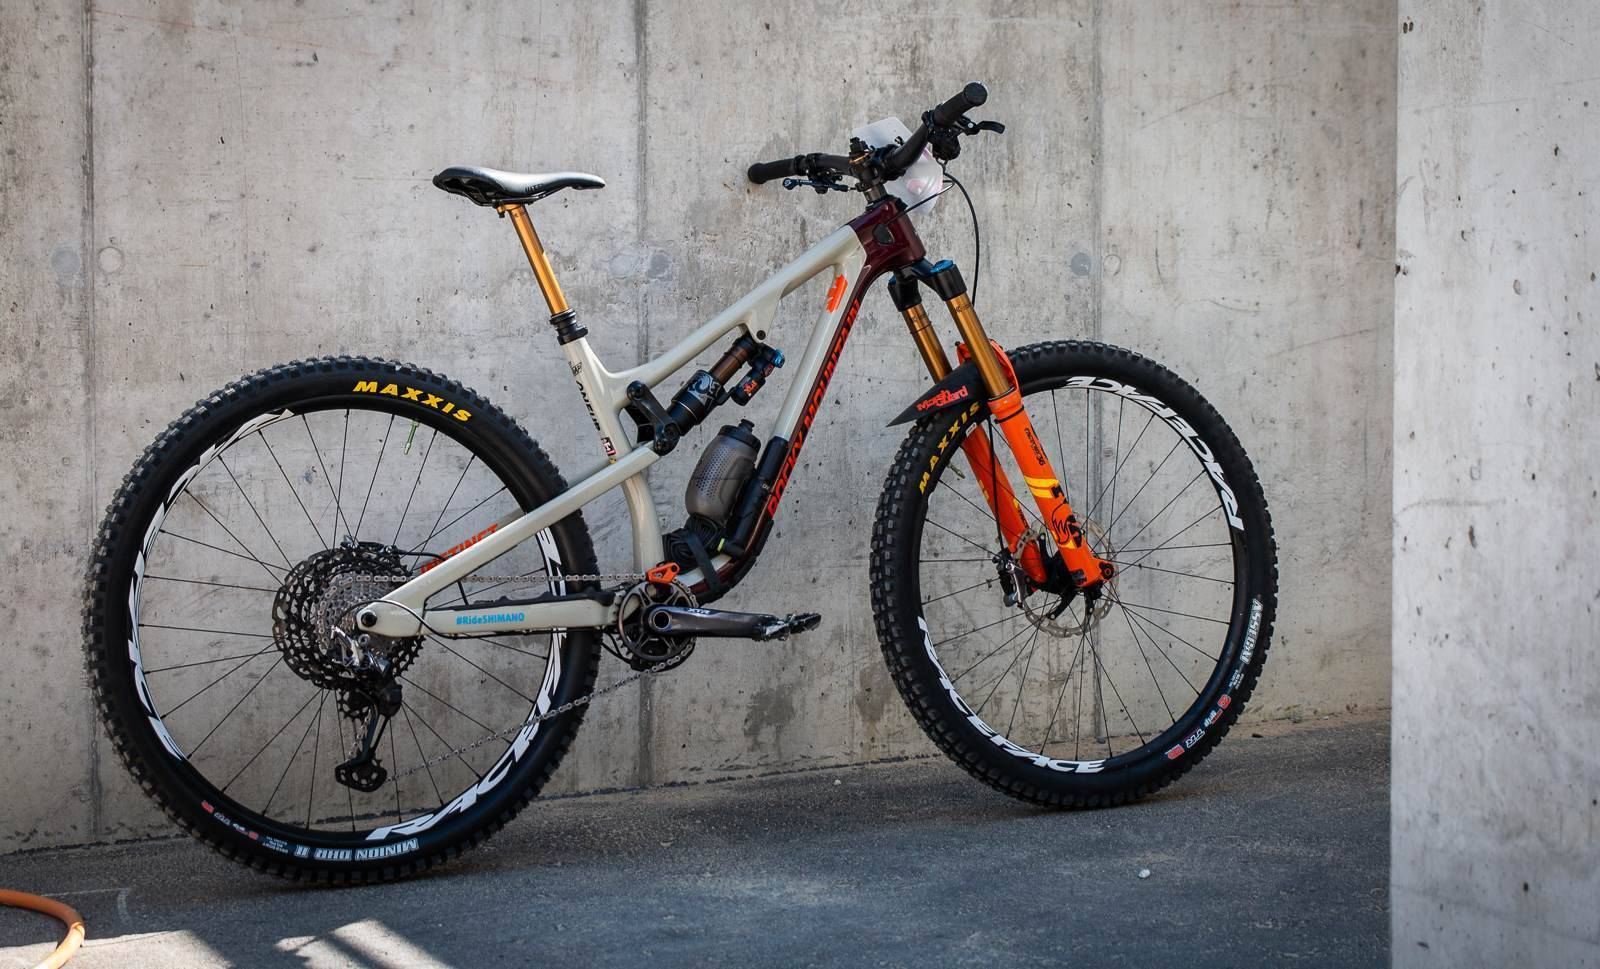 Bike Check: Andreane Lanthier Nadeau's Rocky Mountain Instinct